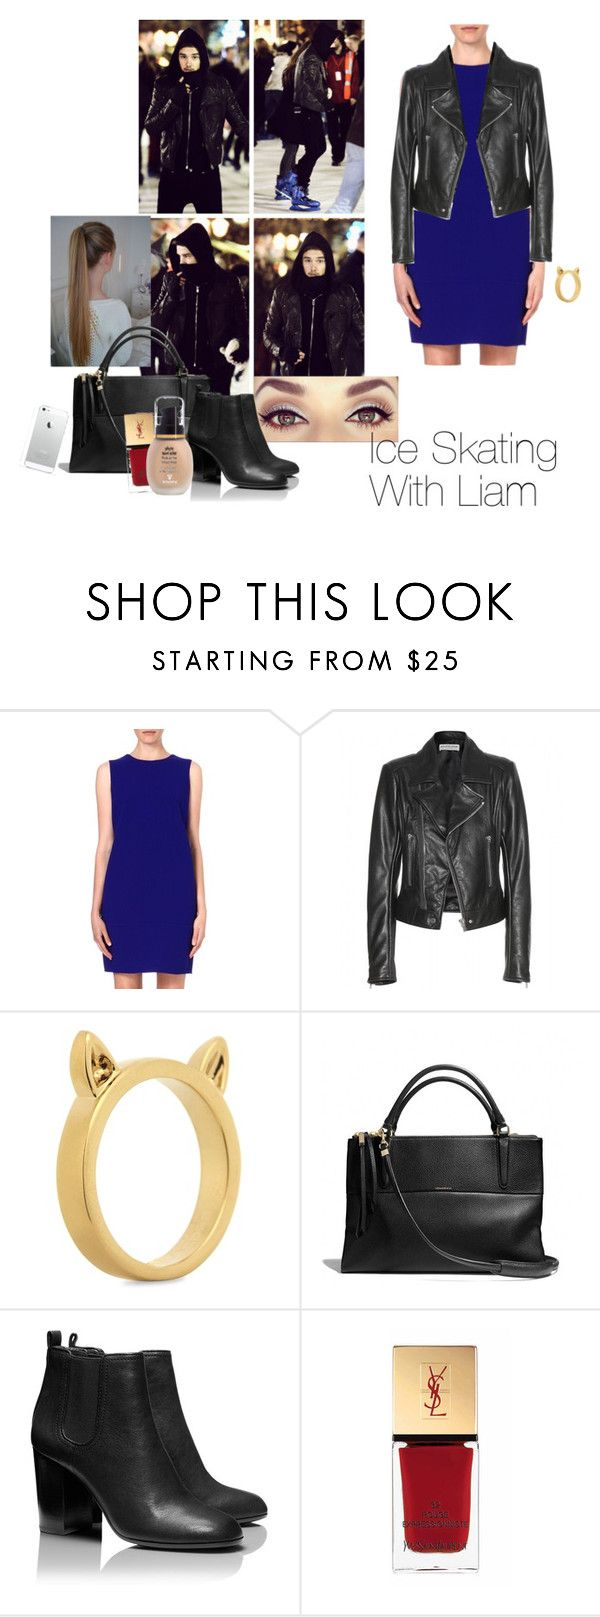 """""""Ice Skating With Liam❤"""" by one-direction-outfitsxxx ❤ liked on Polyvore featuring Payne, Armani Collezioni, Balenciaga, Marc by Marc Jacobs, Coach, Tory Burch, Yves Saint Laurent, Sisley, women's clothing and women"""